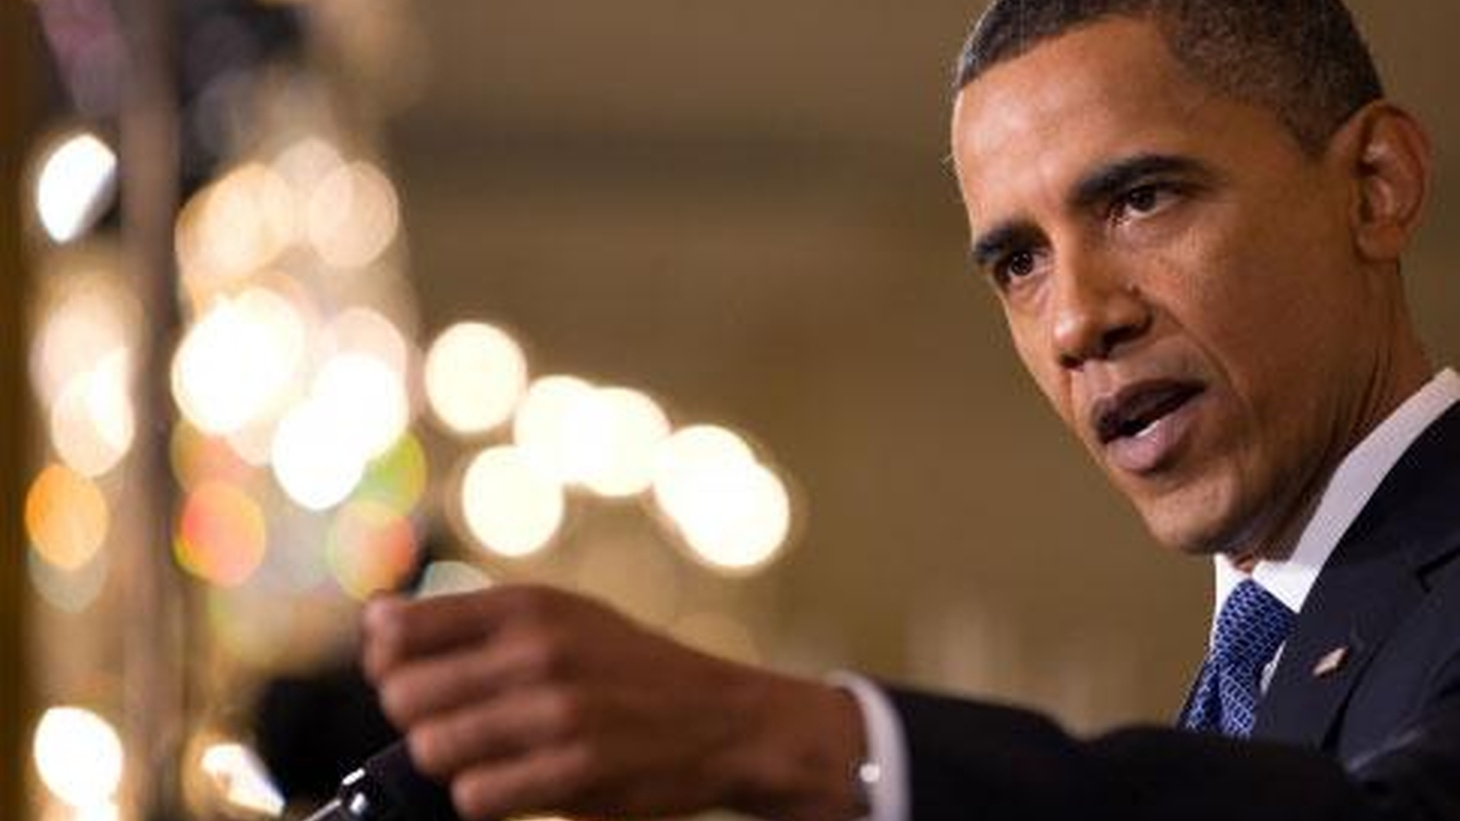 KCRW will provides live, anchored coverage of President Obama's news conference on Friday, September 10 at 8am. This is the President's first full-scale question and answer session at the White House in nearly four months. The likely focus will be the economy. NPR's Jennifer Ludden will host our coverage.